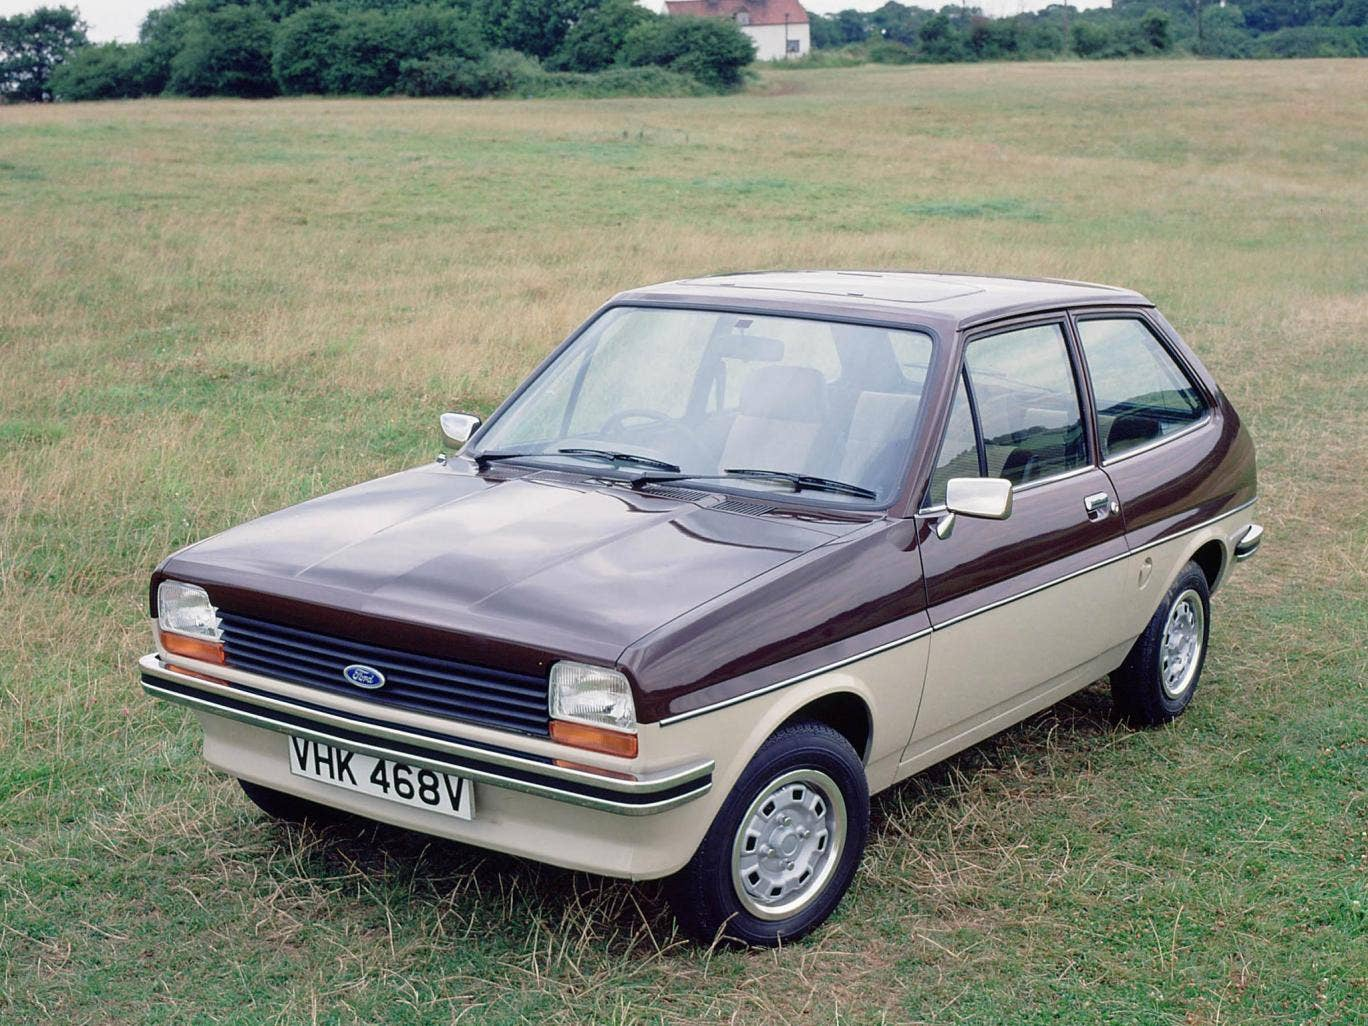 The incredibly popular Ford Fiesta remains a favourite